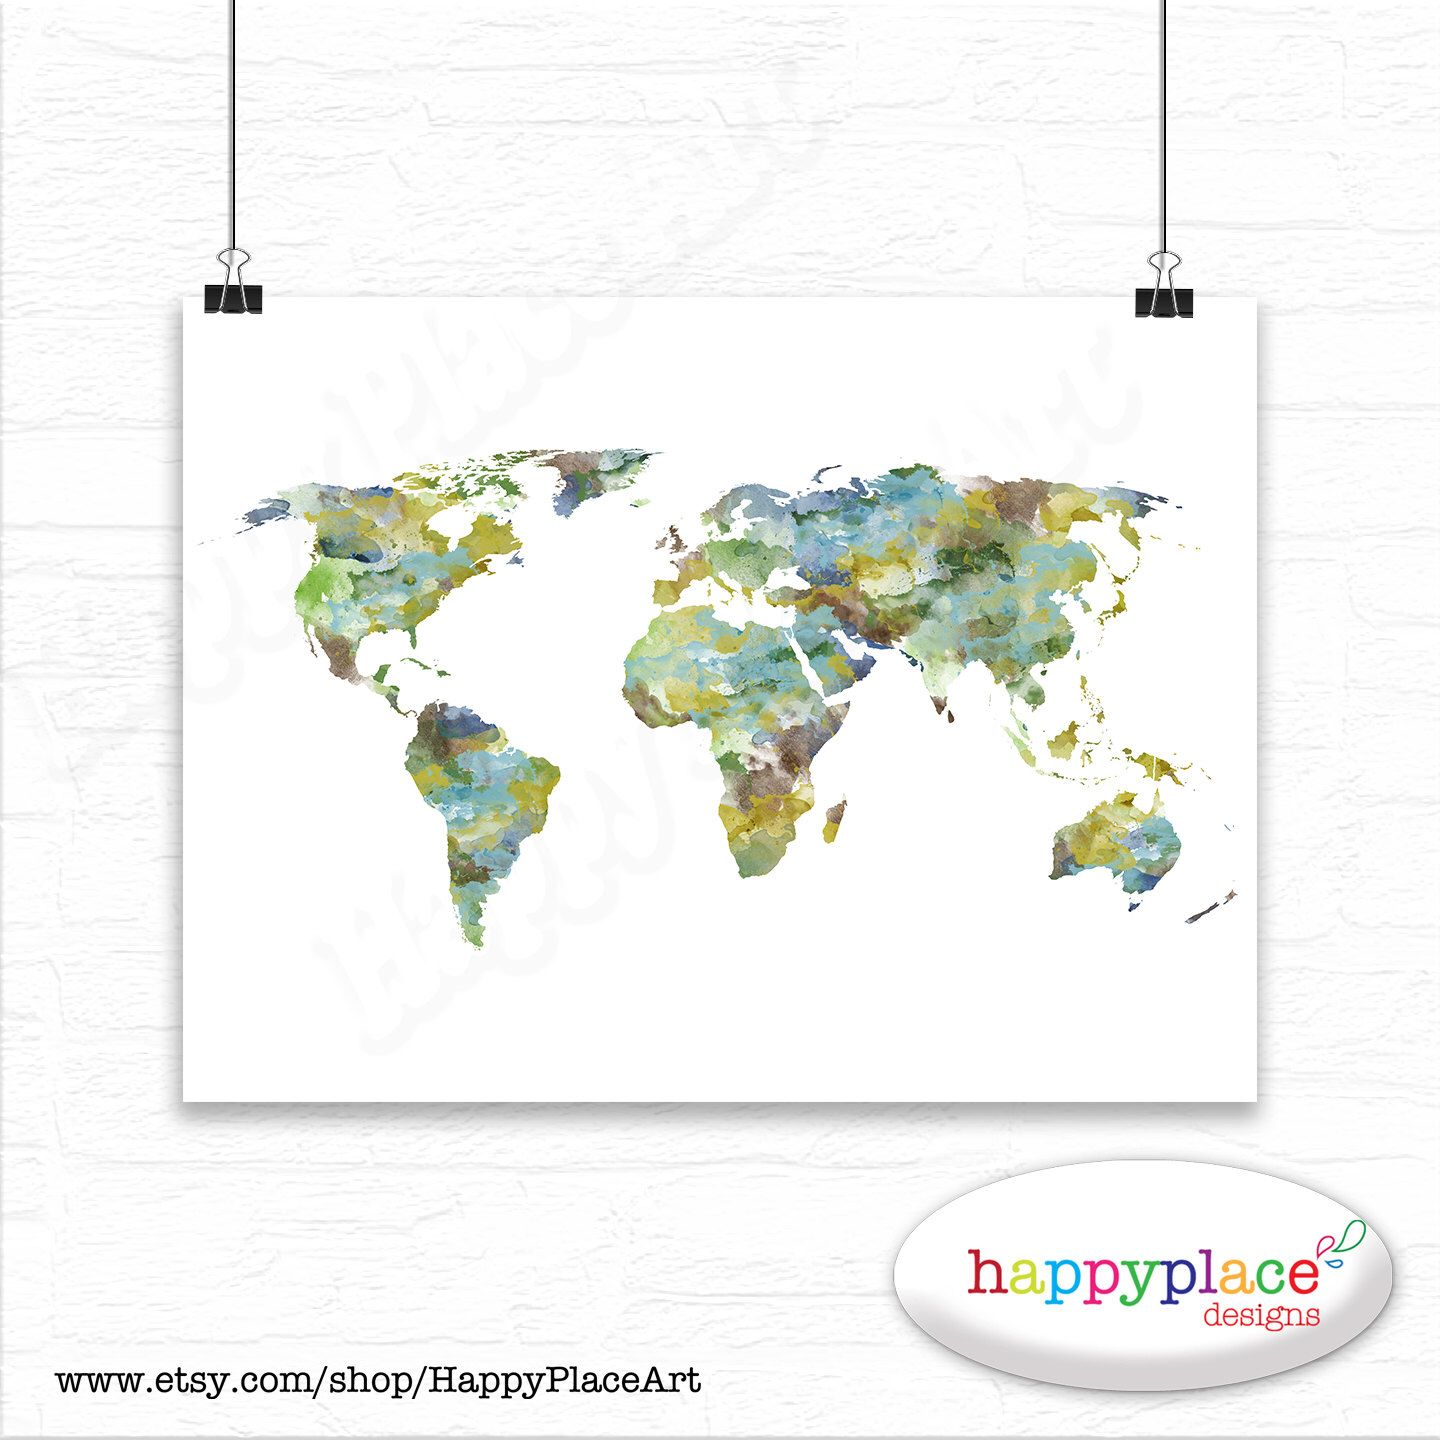 Large world map canvas print or printable personalise it with a large world map canvas print or printable personalise it with a message great travel map heart map push pin map canvas world map art gumiabroncs Image collections